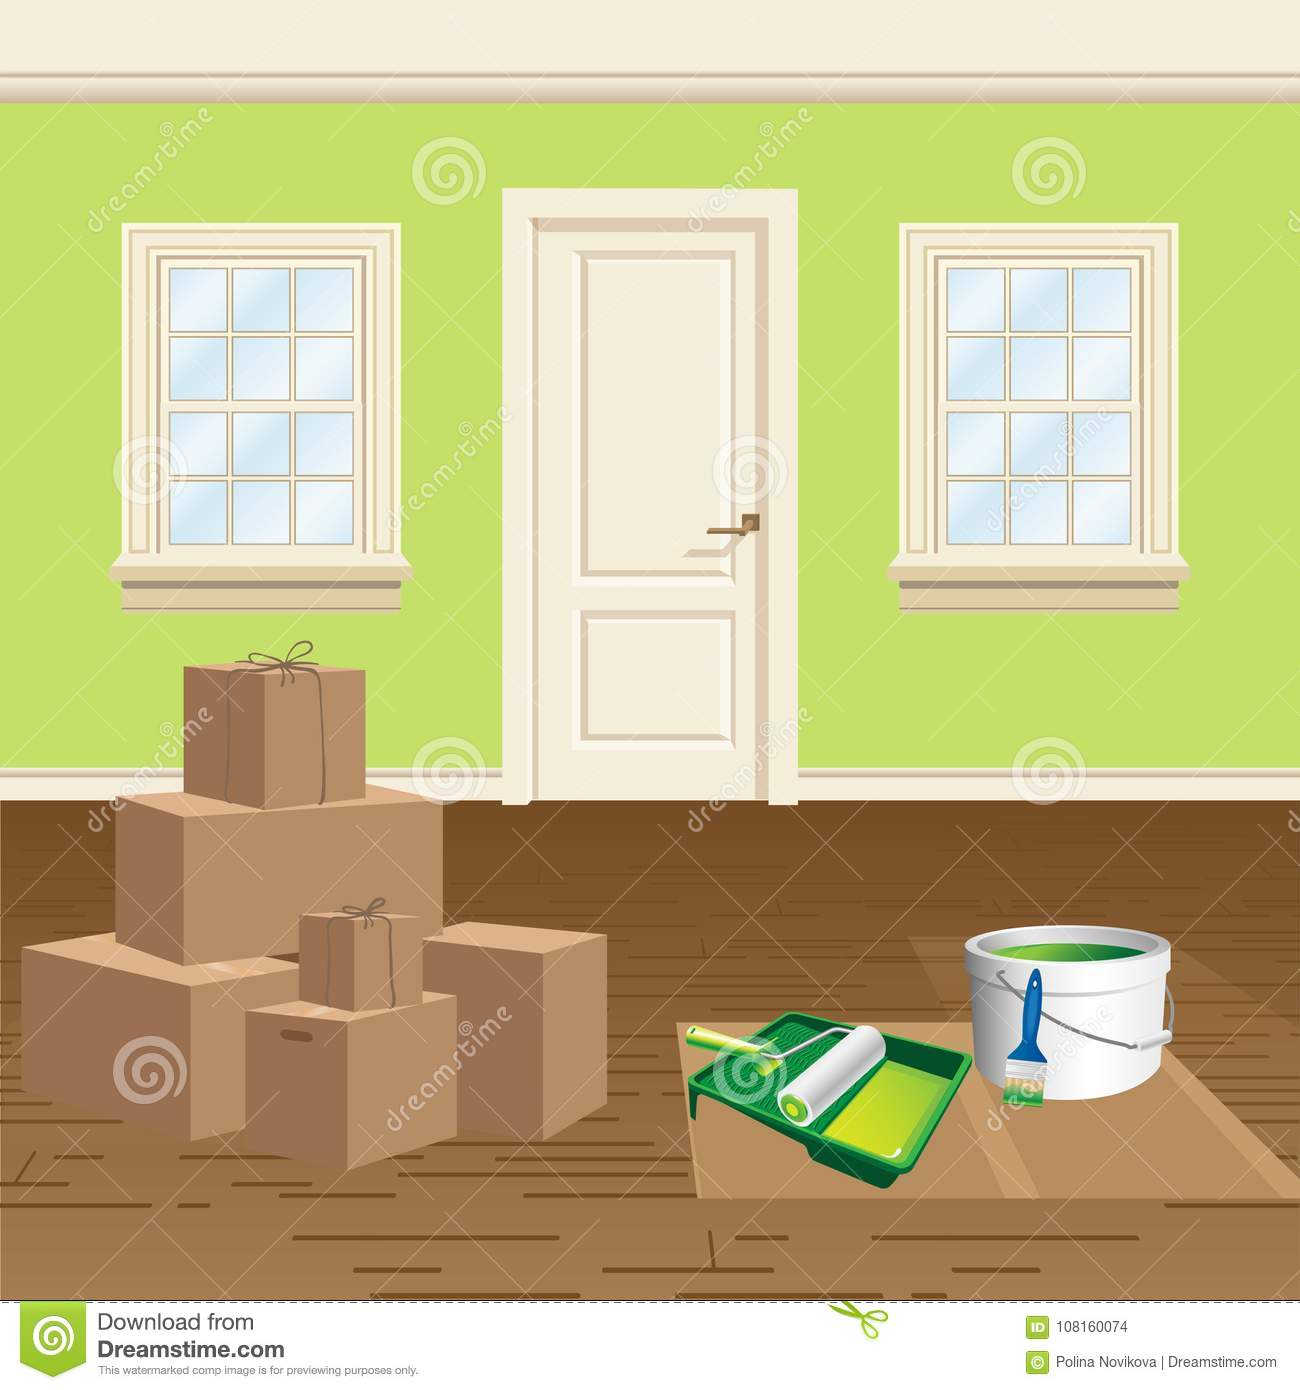 Home renovation and repainting, move into a new home vector illustration.